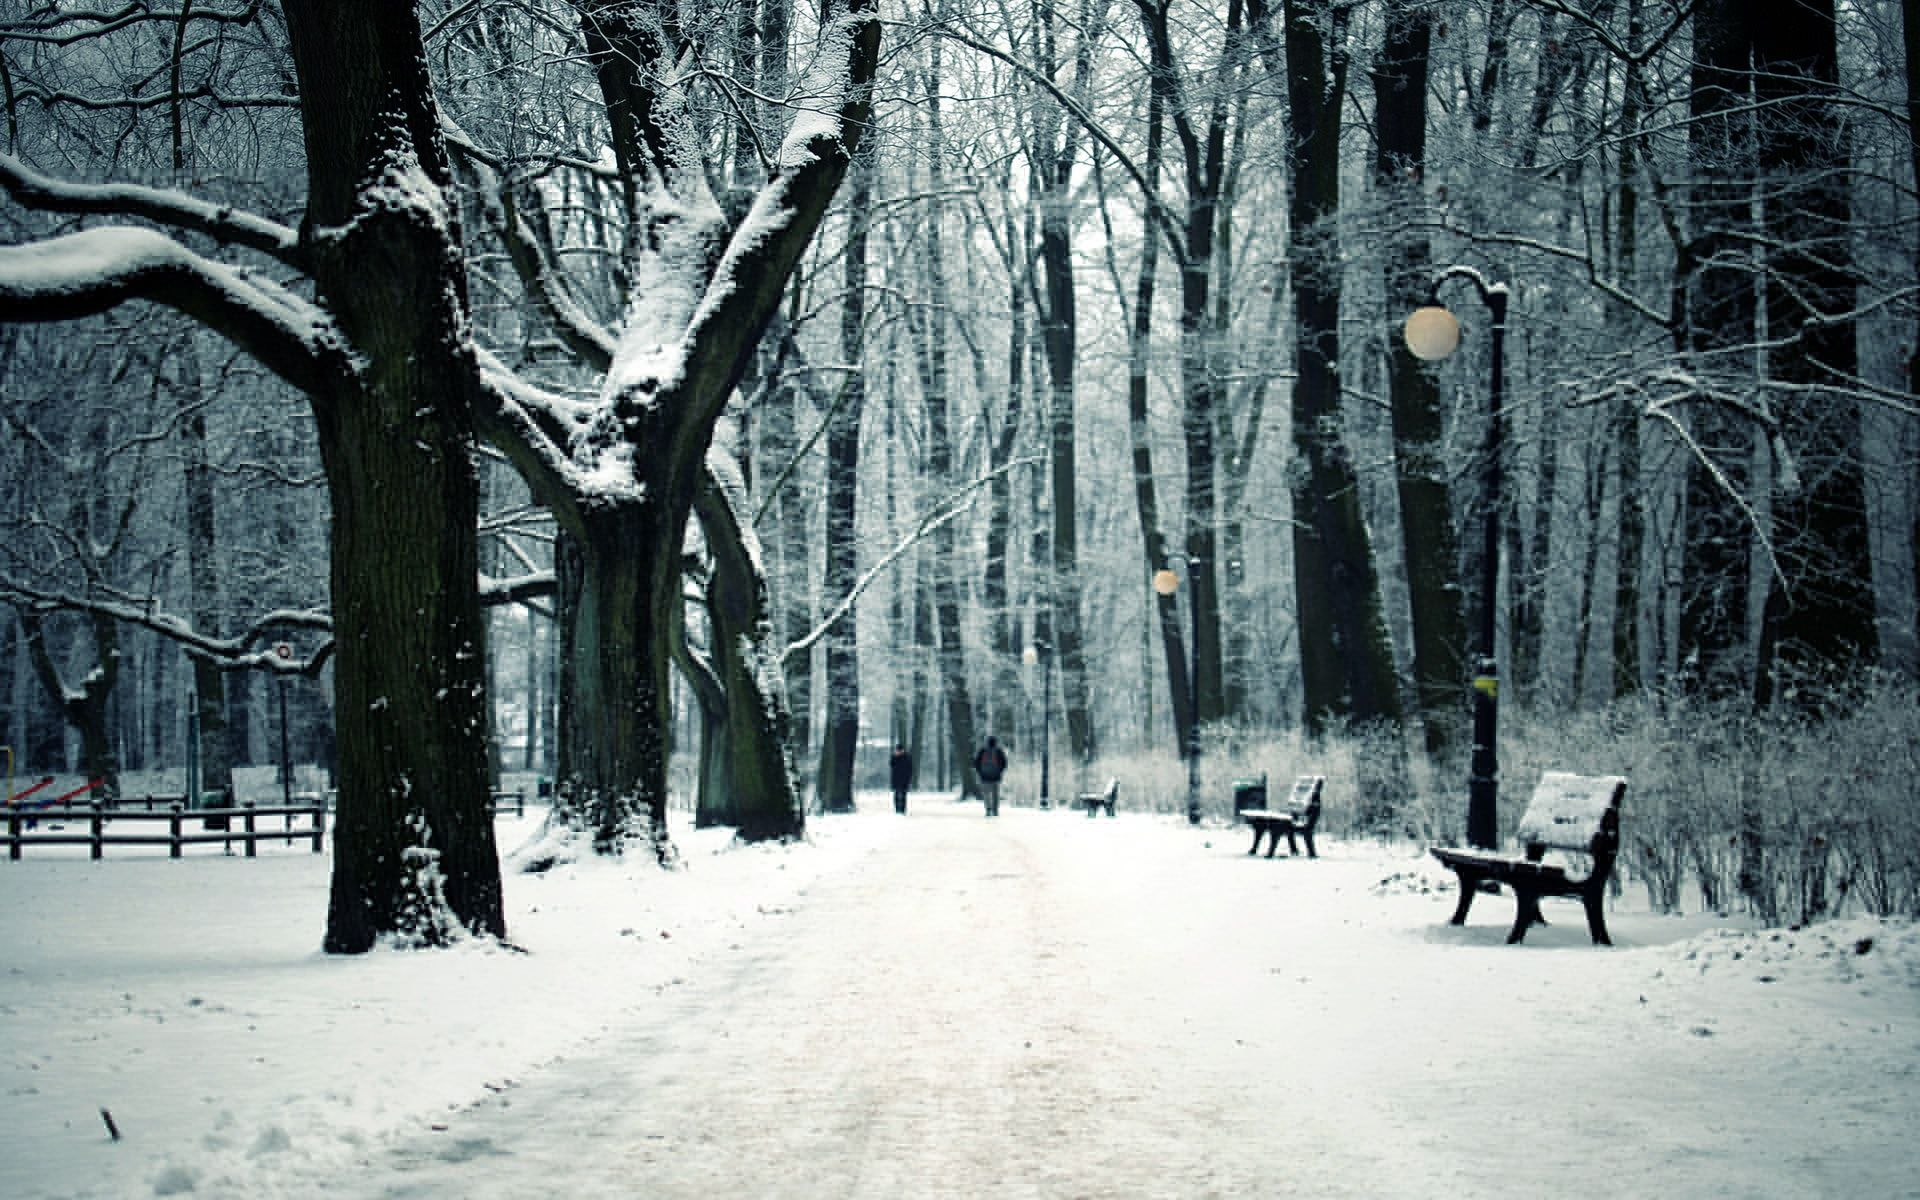 Pin On Wallpapers Hd wallpaper winter snow train forest